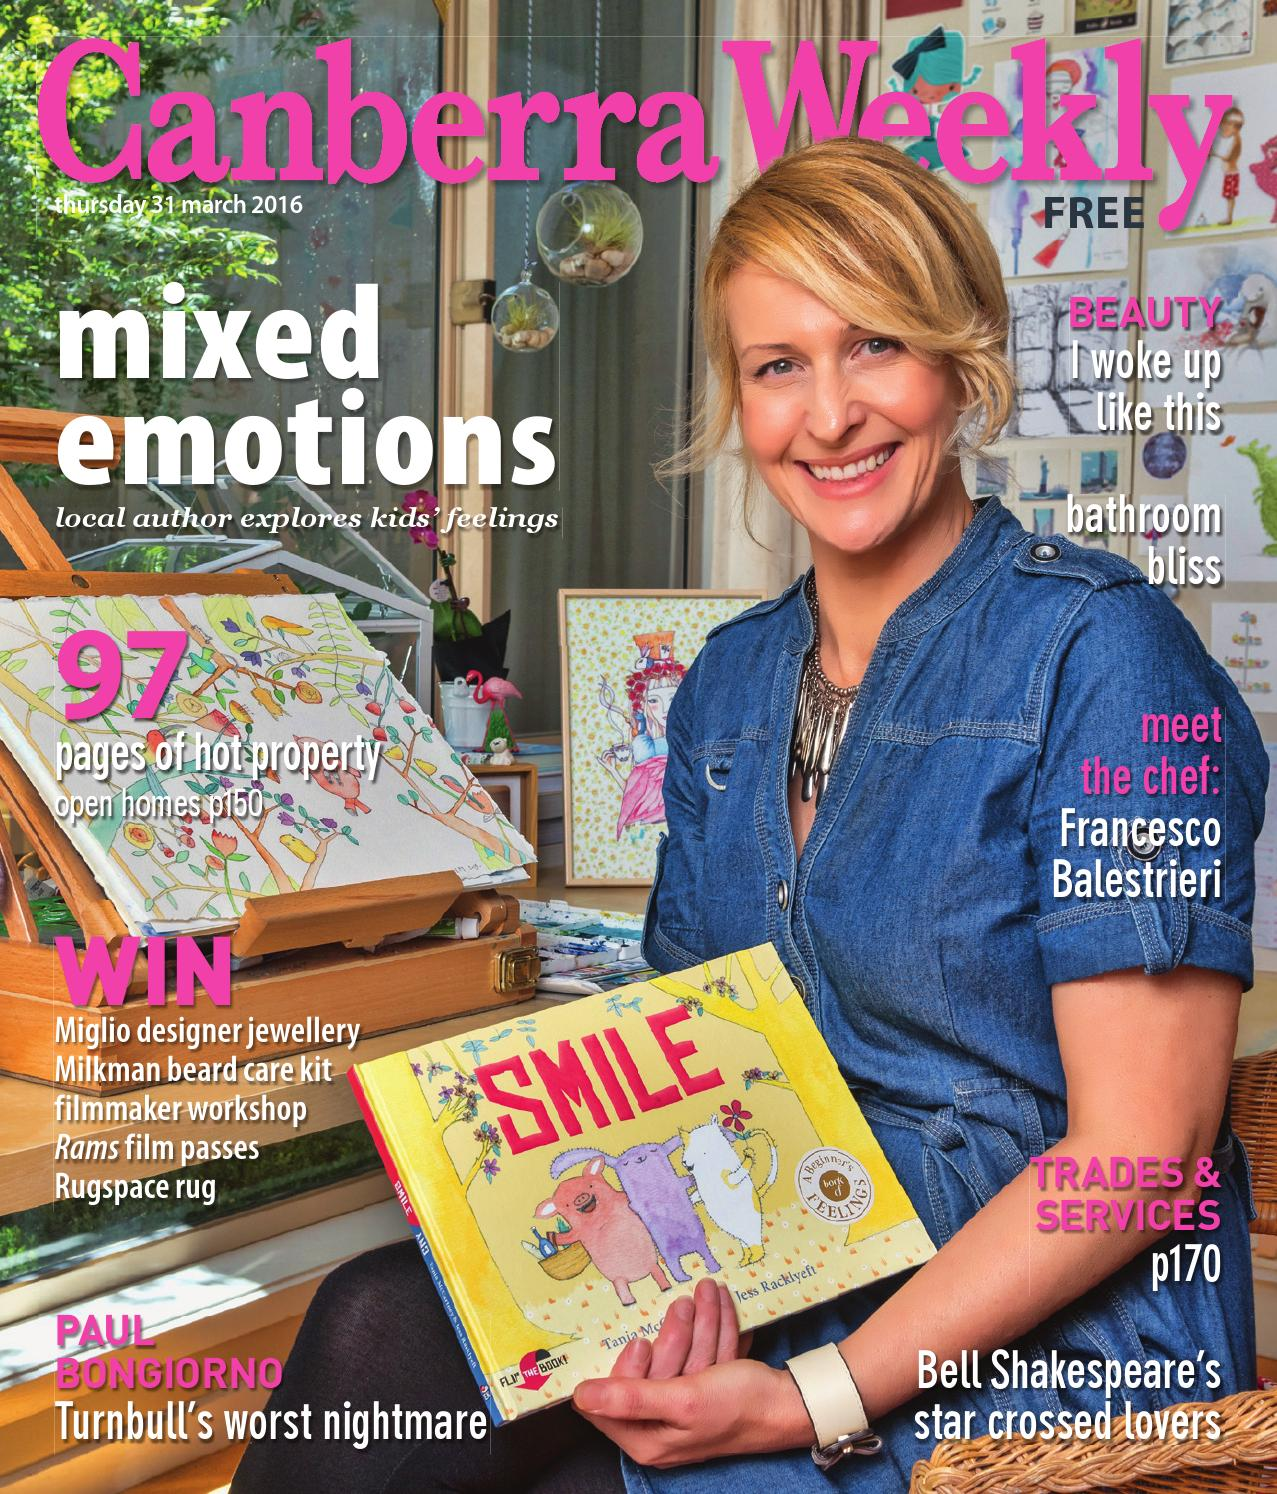 1422c6653a1 31 March 2016 by Canberra Weekly Magazine - issuu